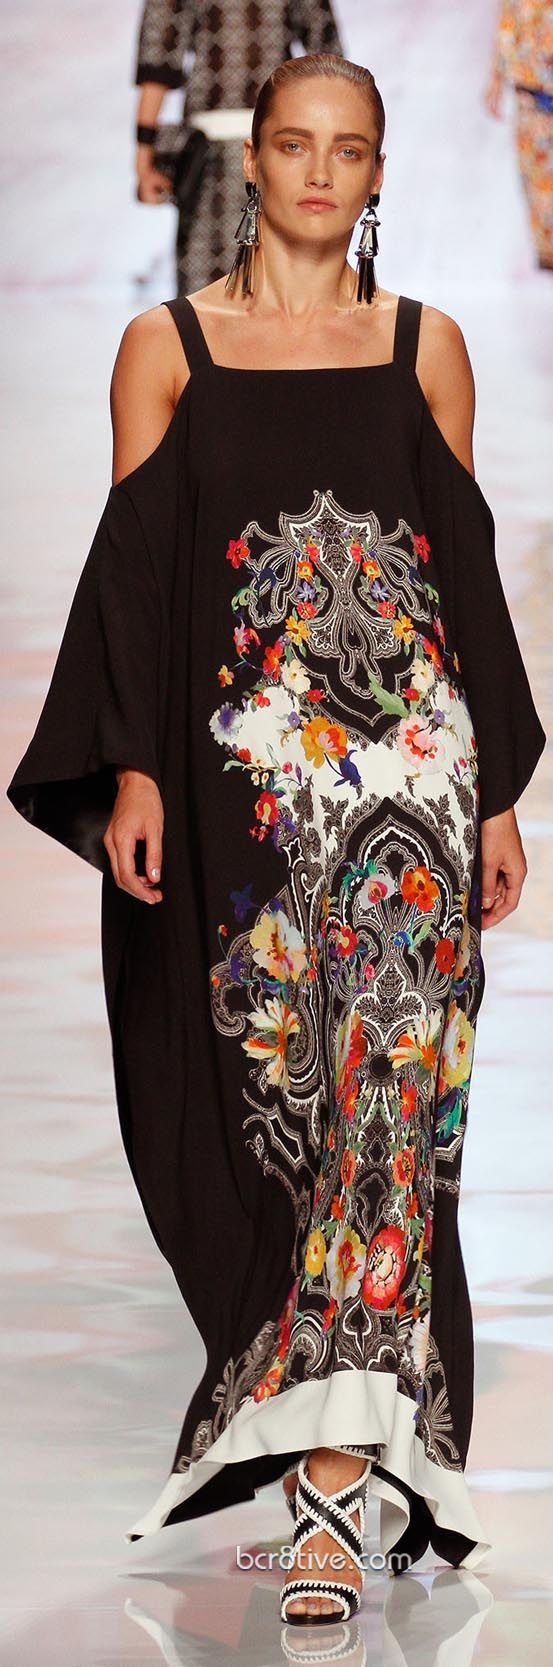 ETRO Spring Summer 2013 - I like the fabric but not the dress silhouette